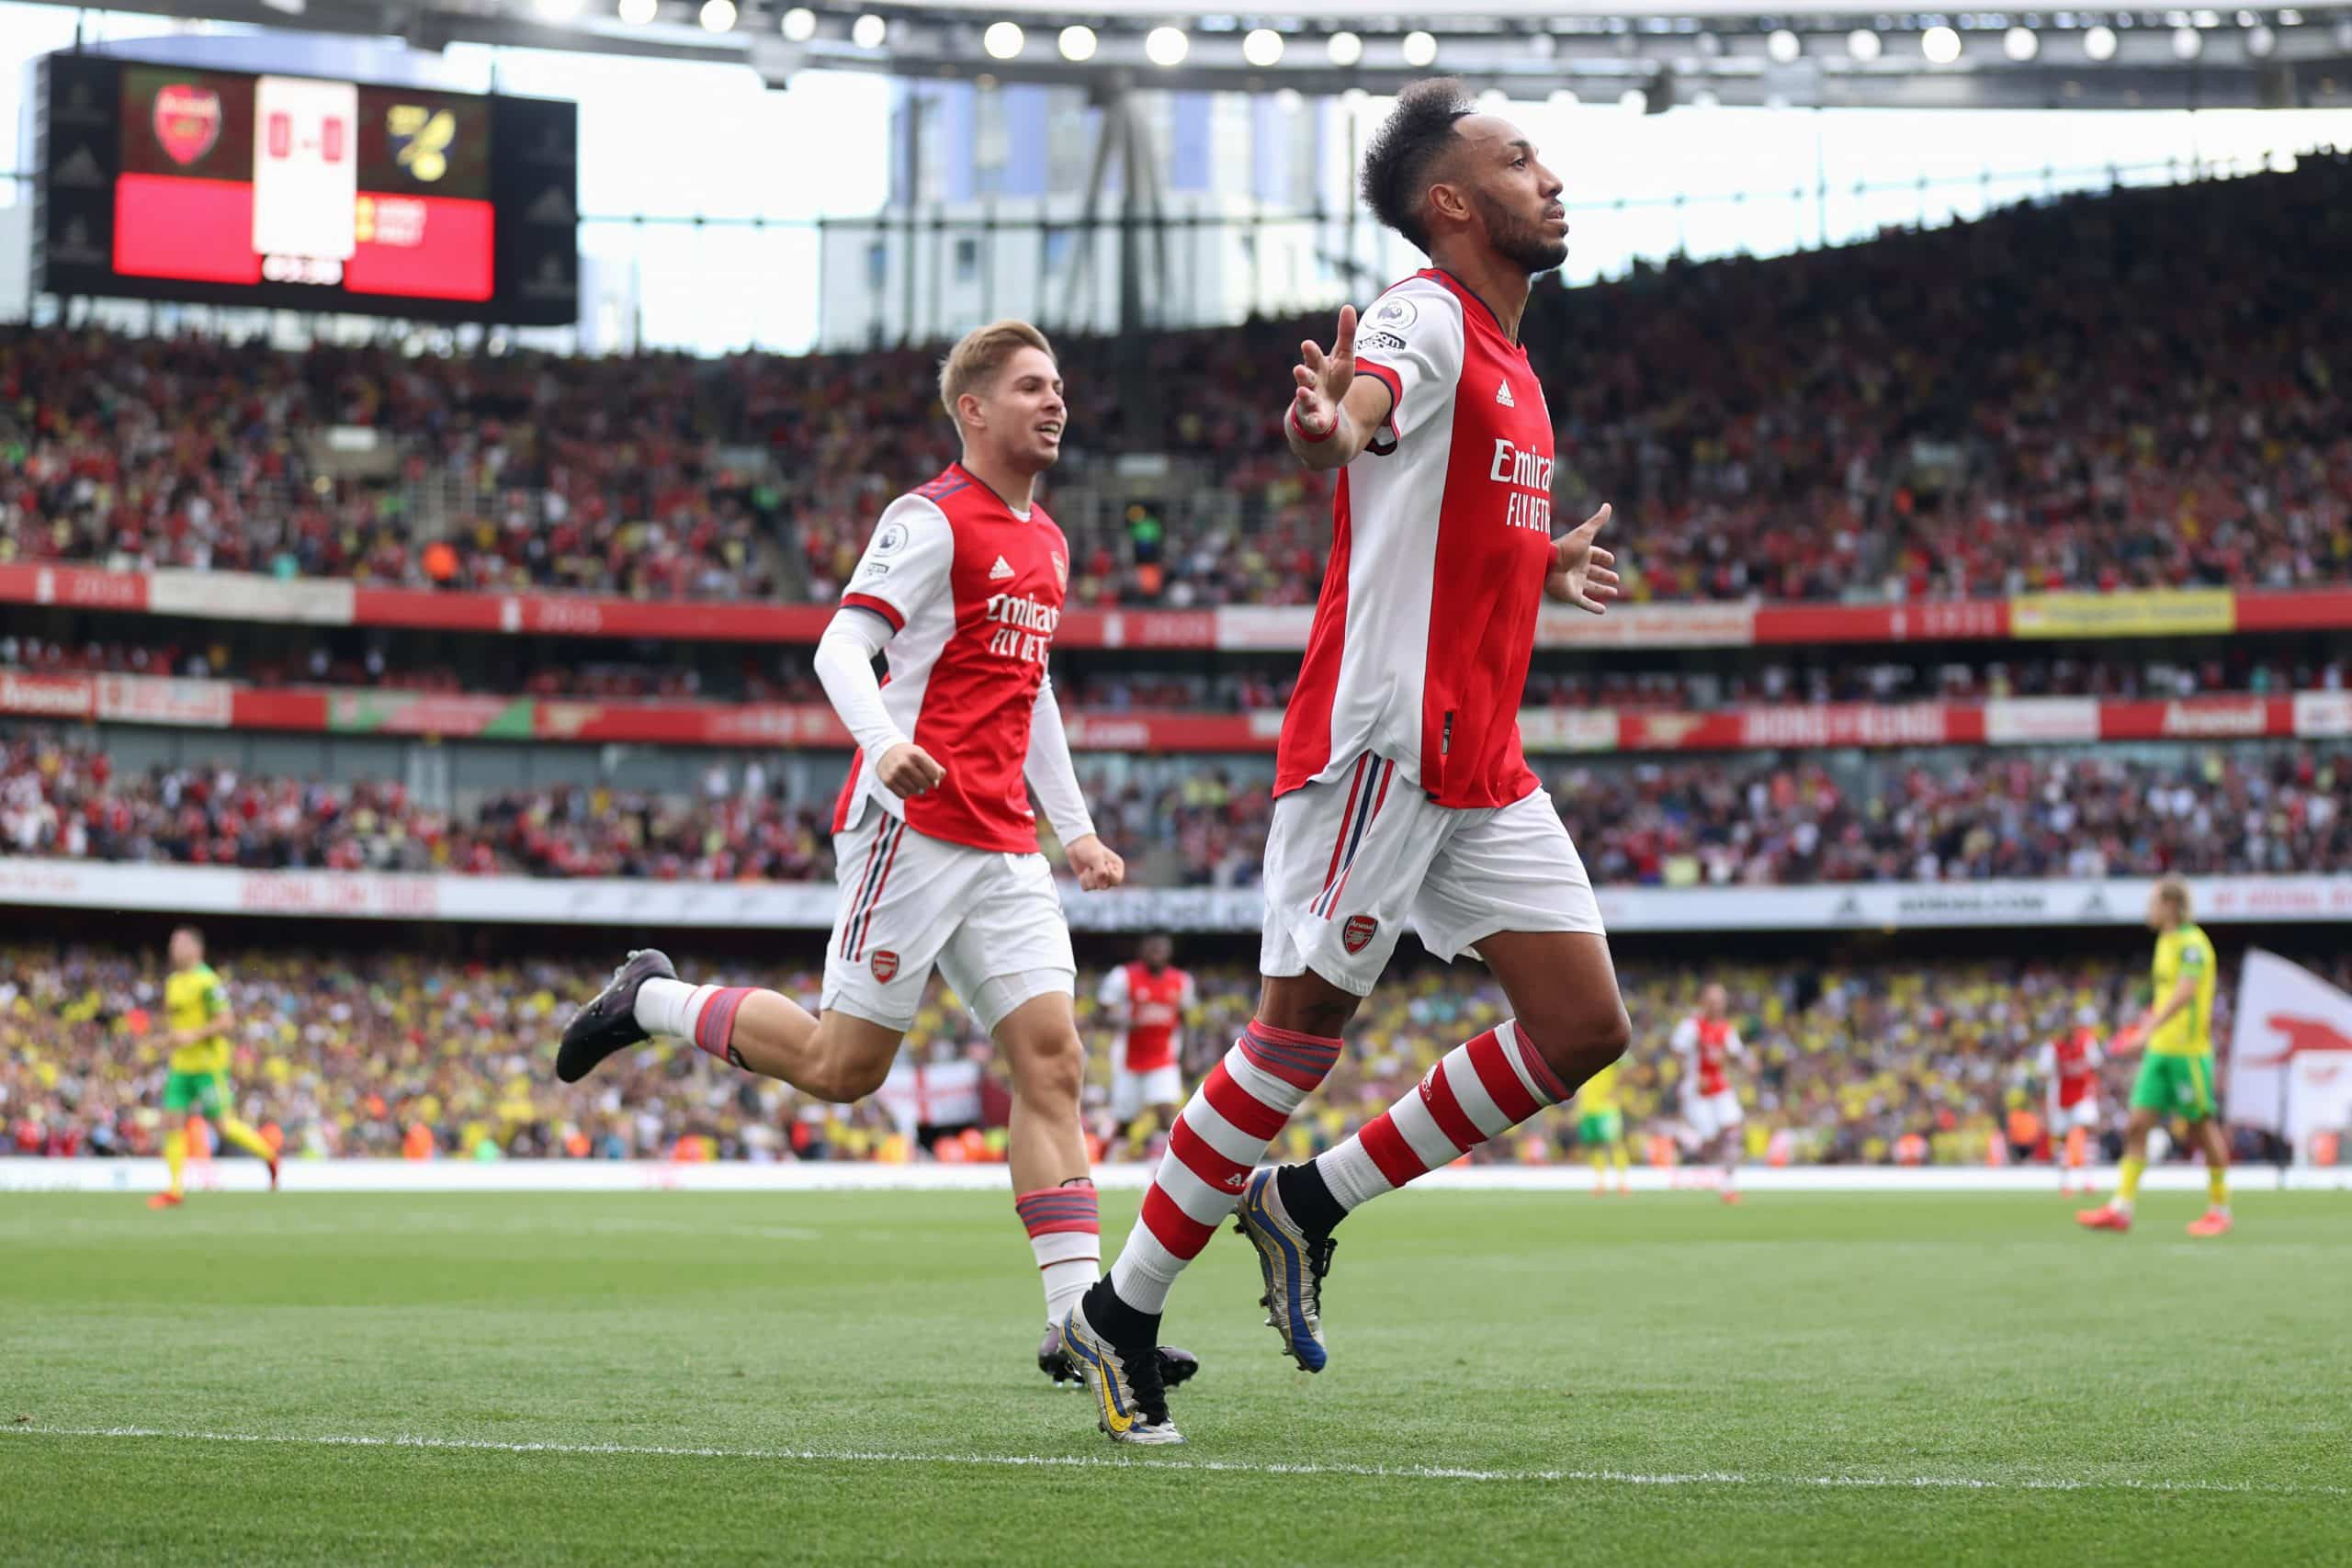 Brighton & Hove Albion vs Arsenal betting tips: Preview, predictions & odds